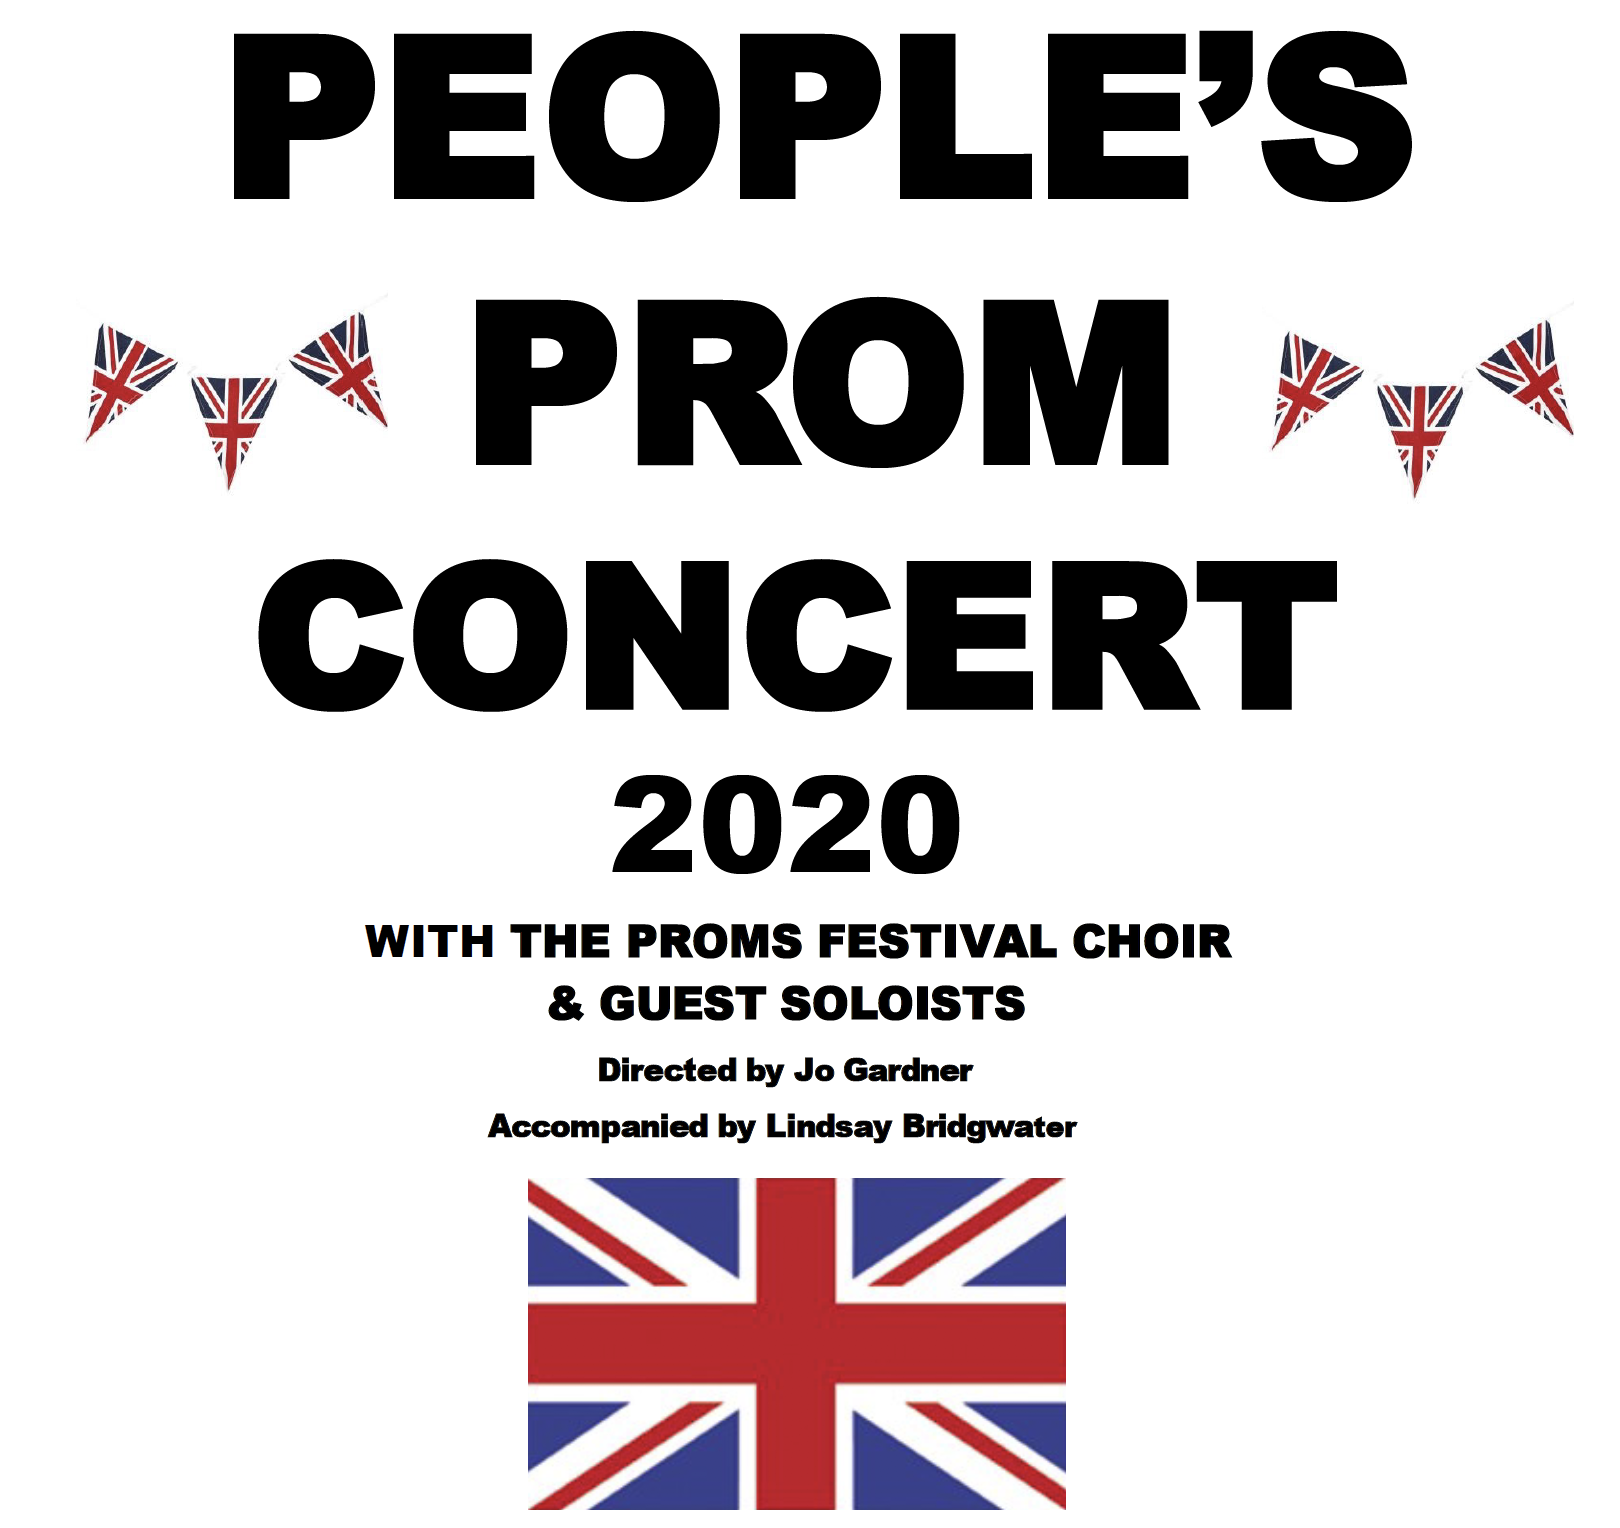 People's Prom Concert – Friday 7th February